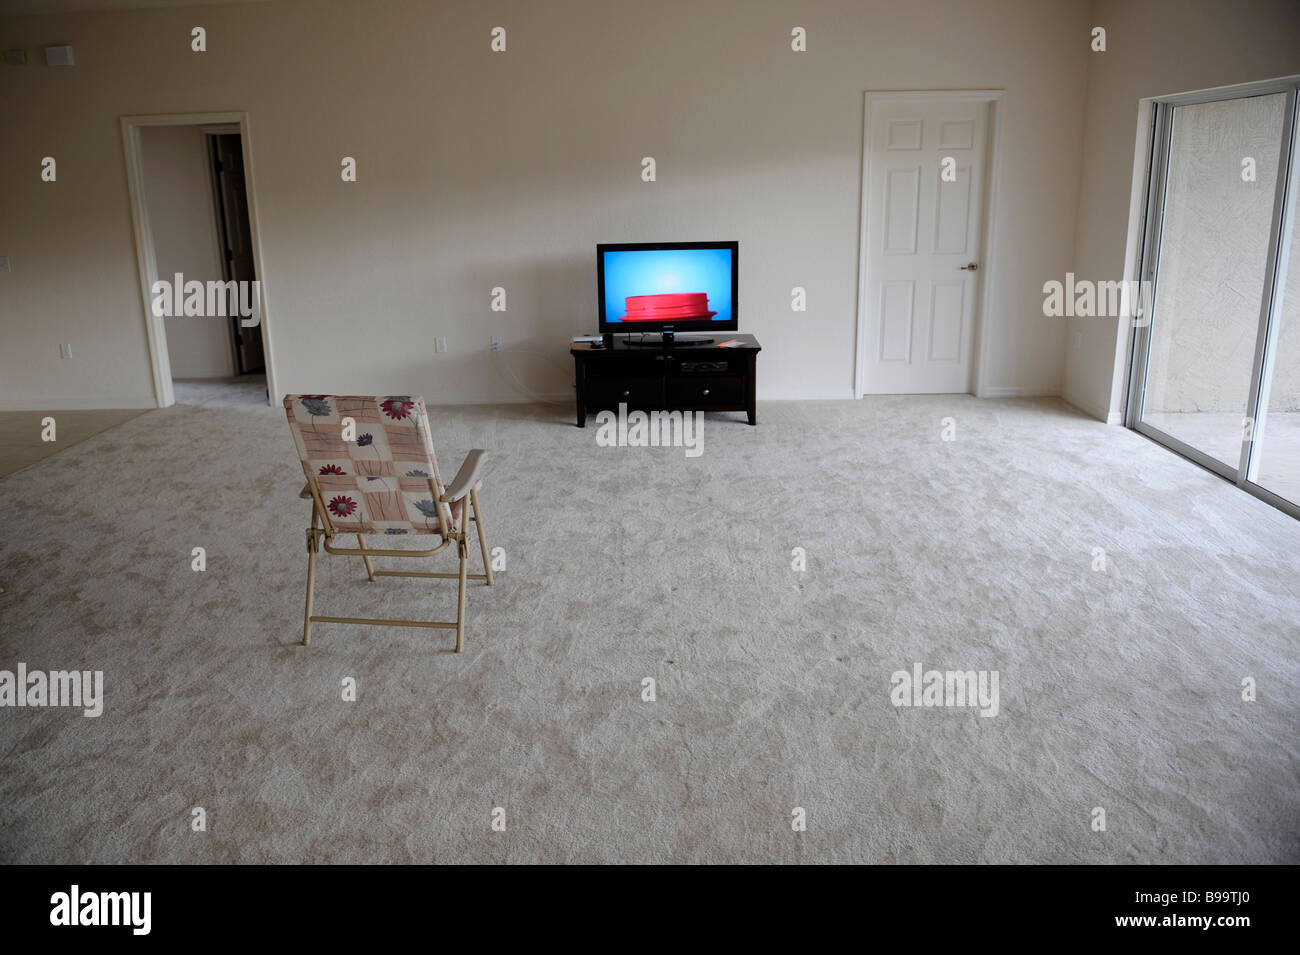 Empty chair in room - Flat Panel Lcd Tv Television Sits Alone In Empty Living Room With Folding Chair